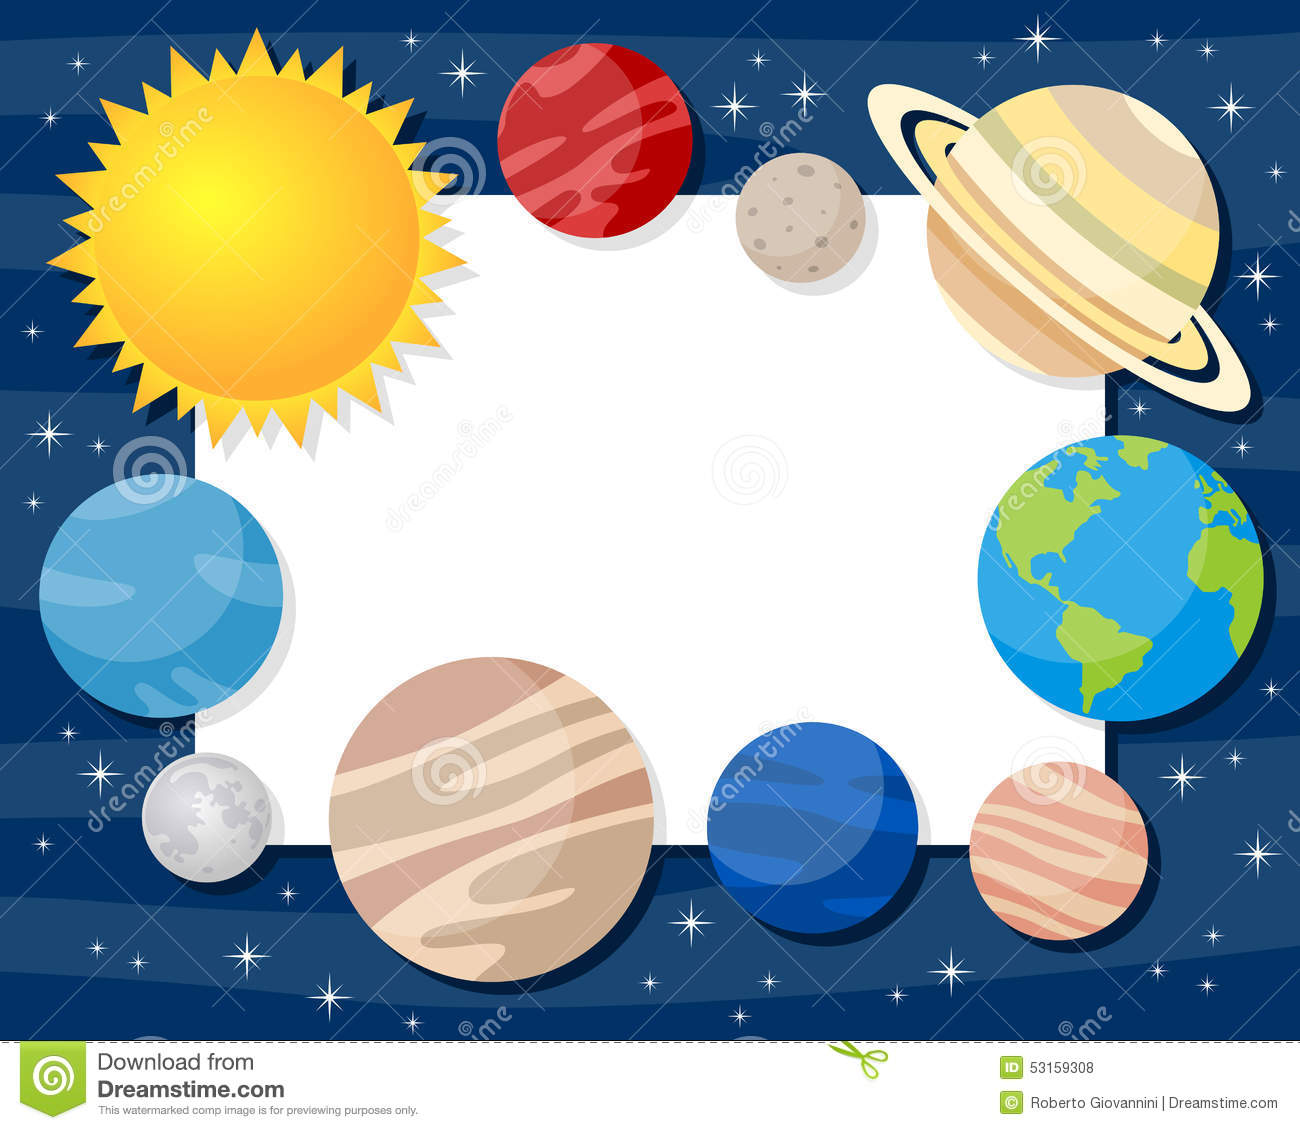 748 Solar System free clipart.